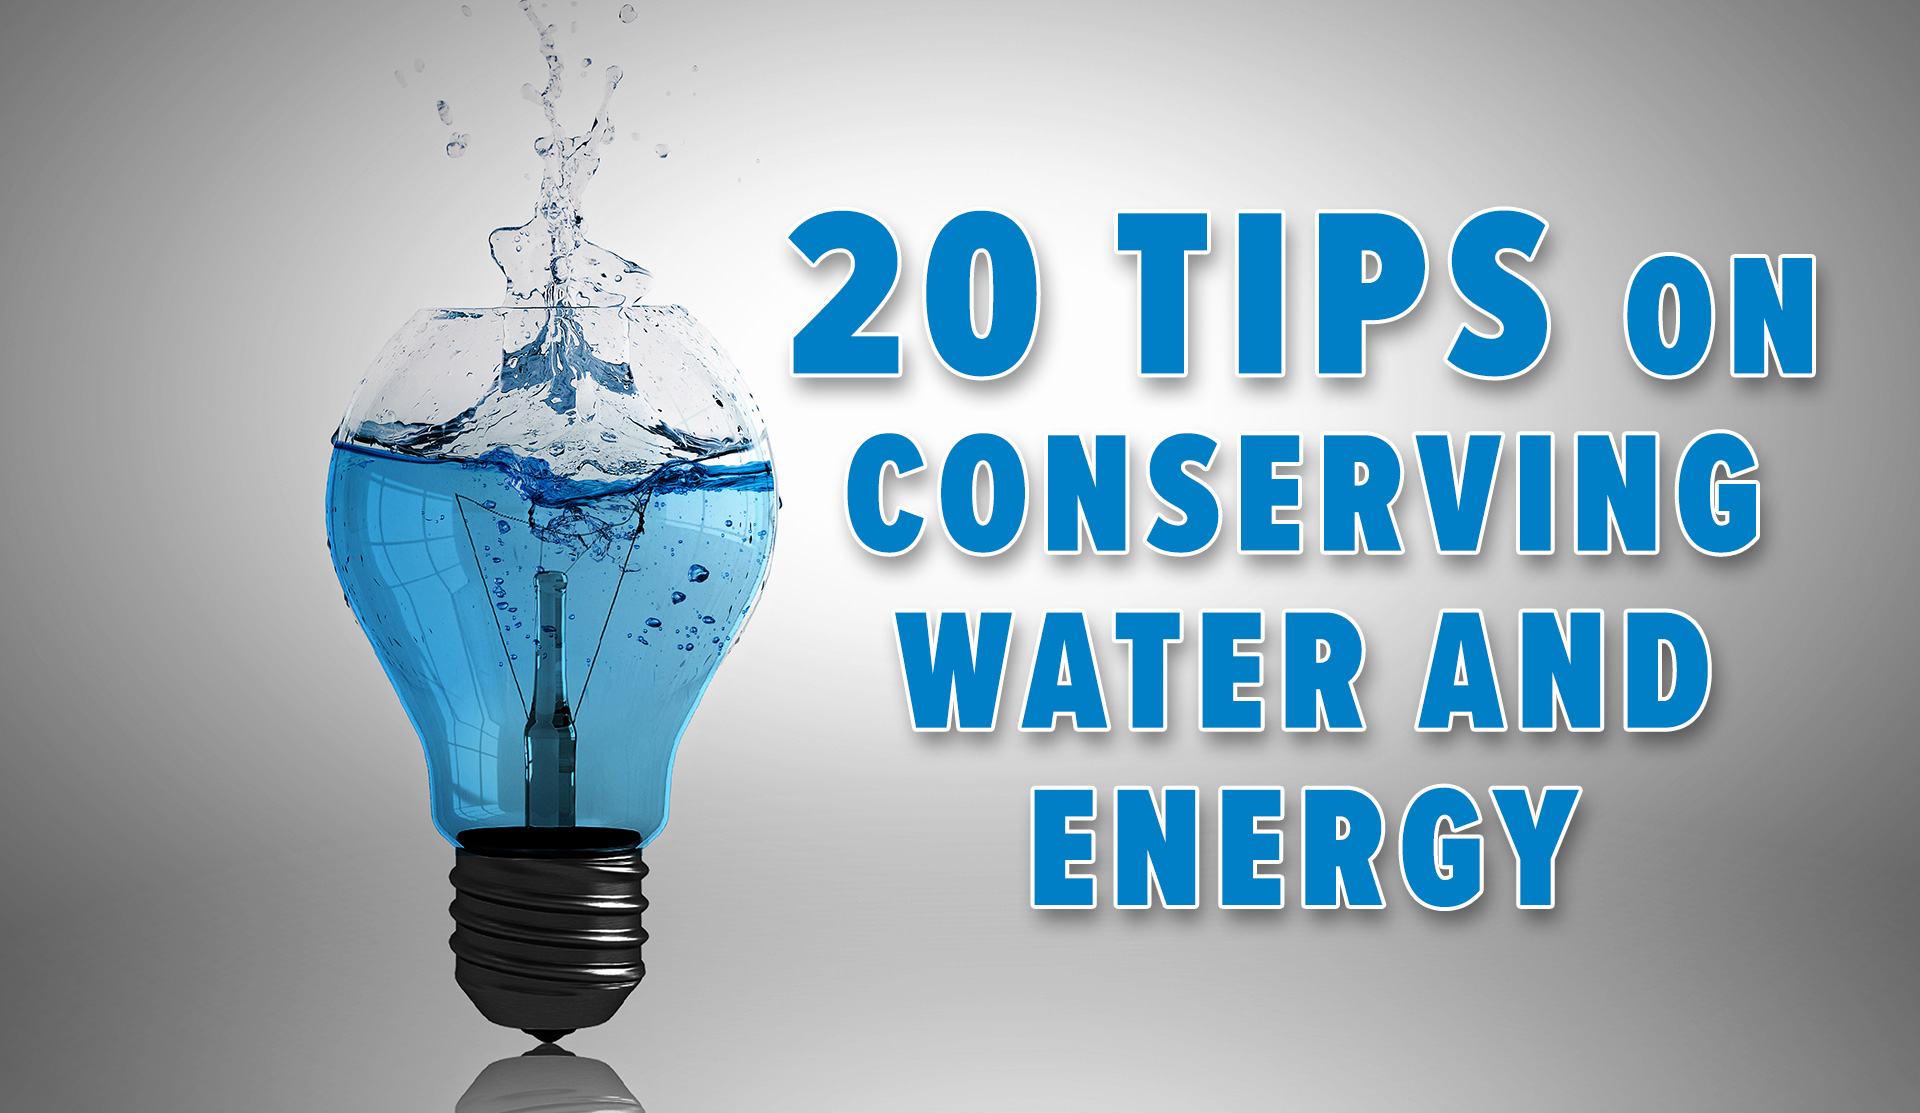 20 tips on conserving water and energy